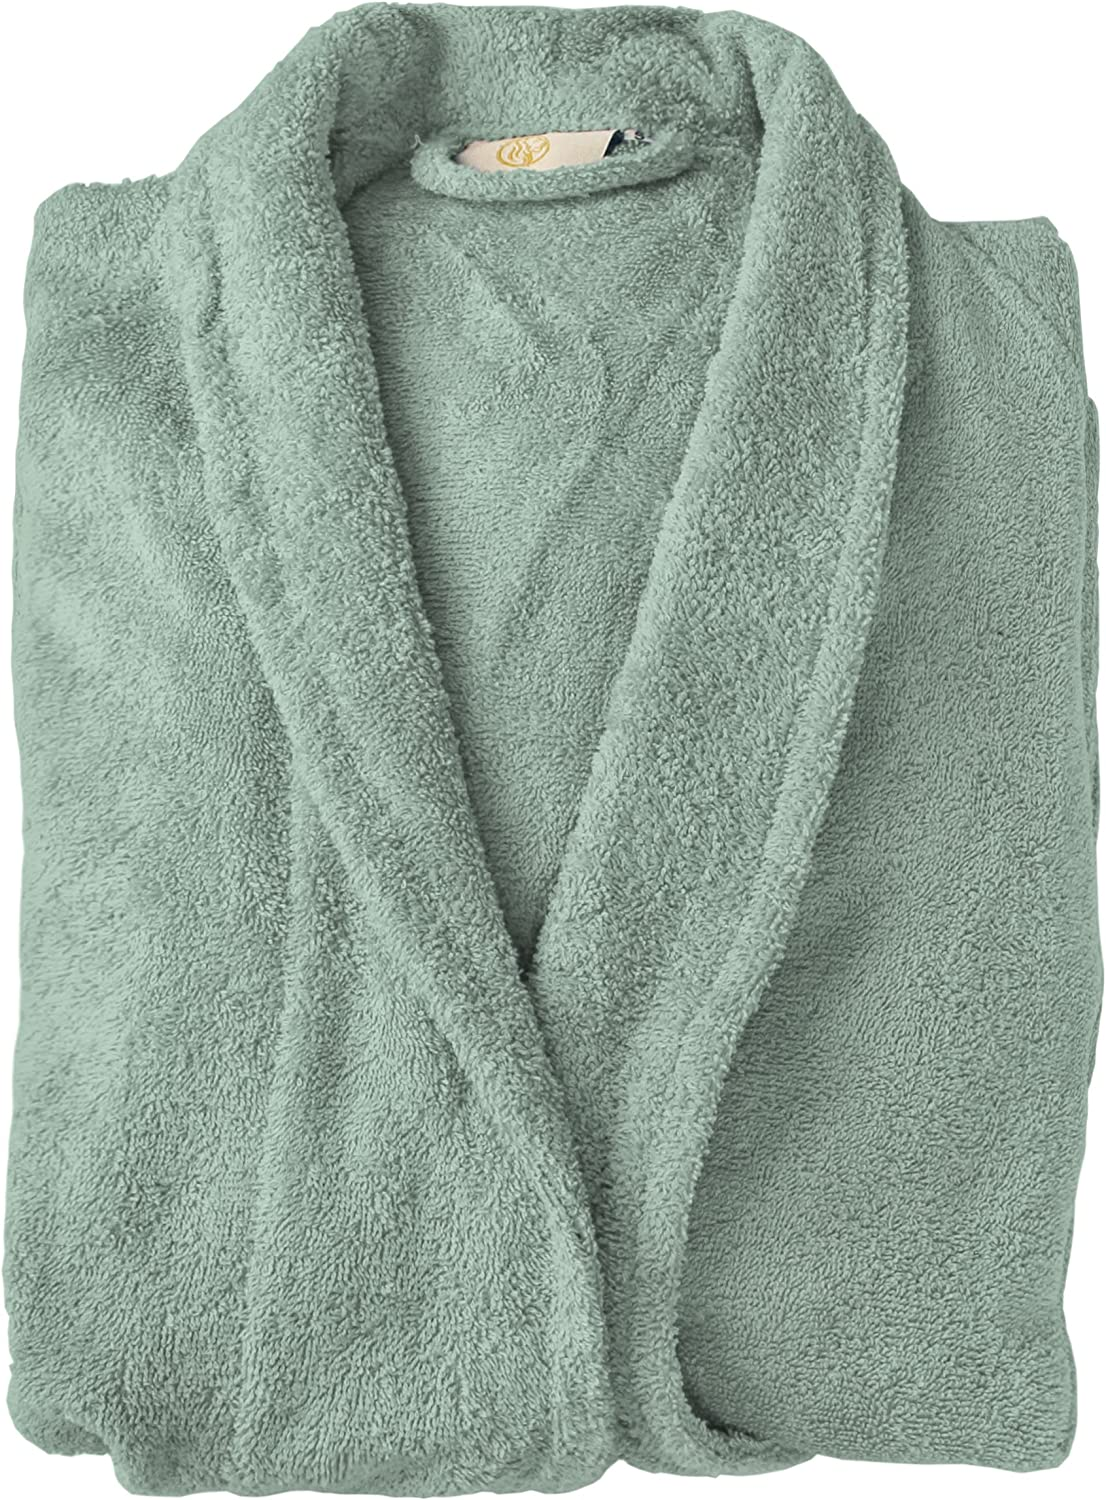 SUPERIOR Cotton Unisex Terry Bathrobe for Woman and Man, Soft SPA Robes